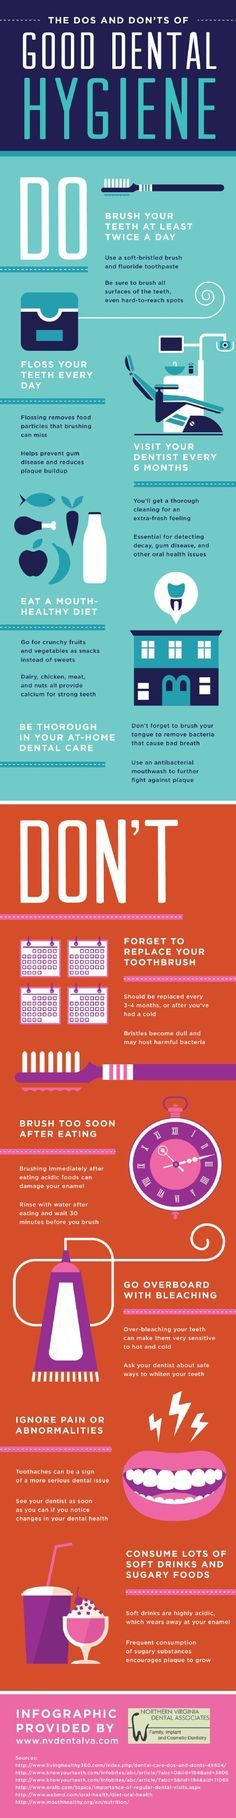 What poor dental hygiene can do to your body! | Dental Facts | Pinterest | Dental Hygiene ... #dentalfacts